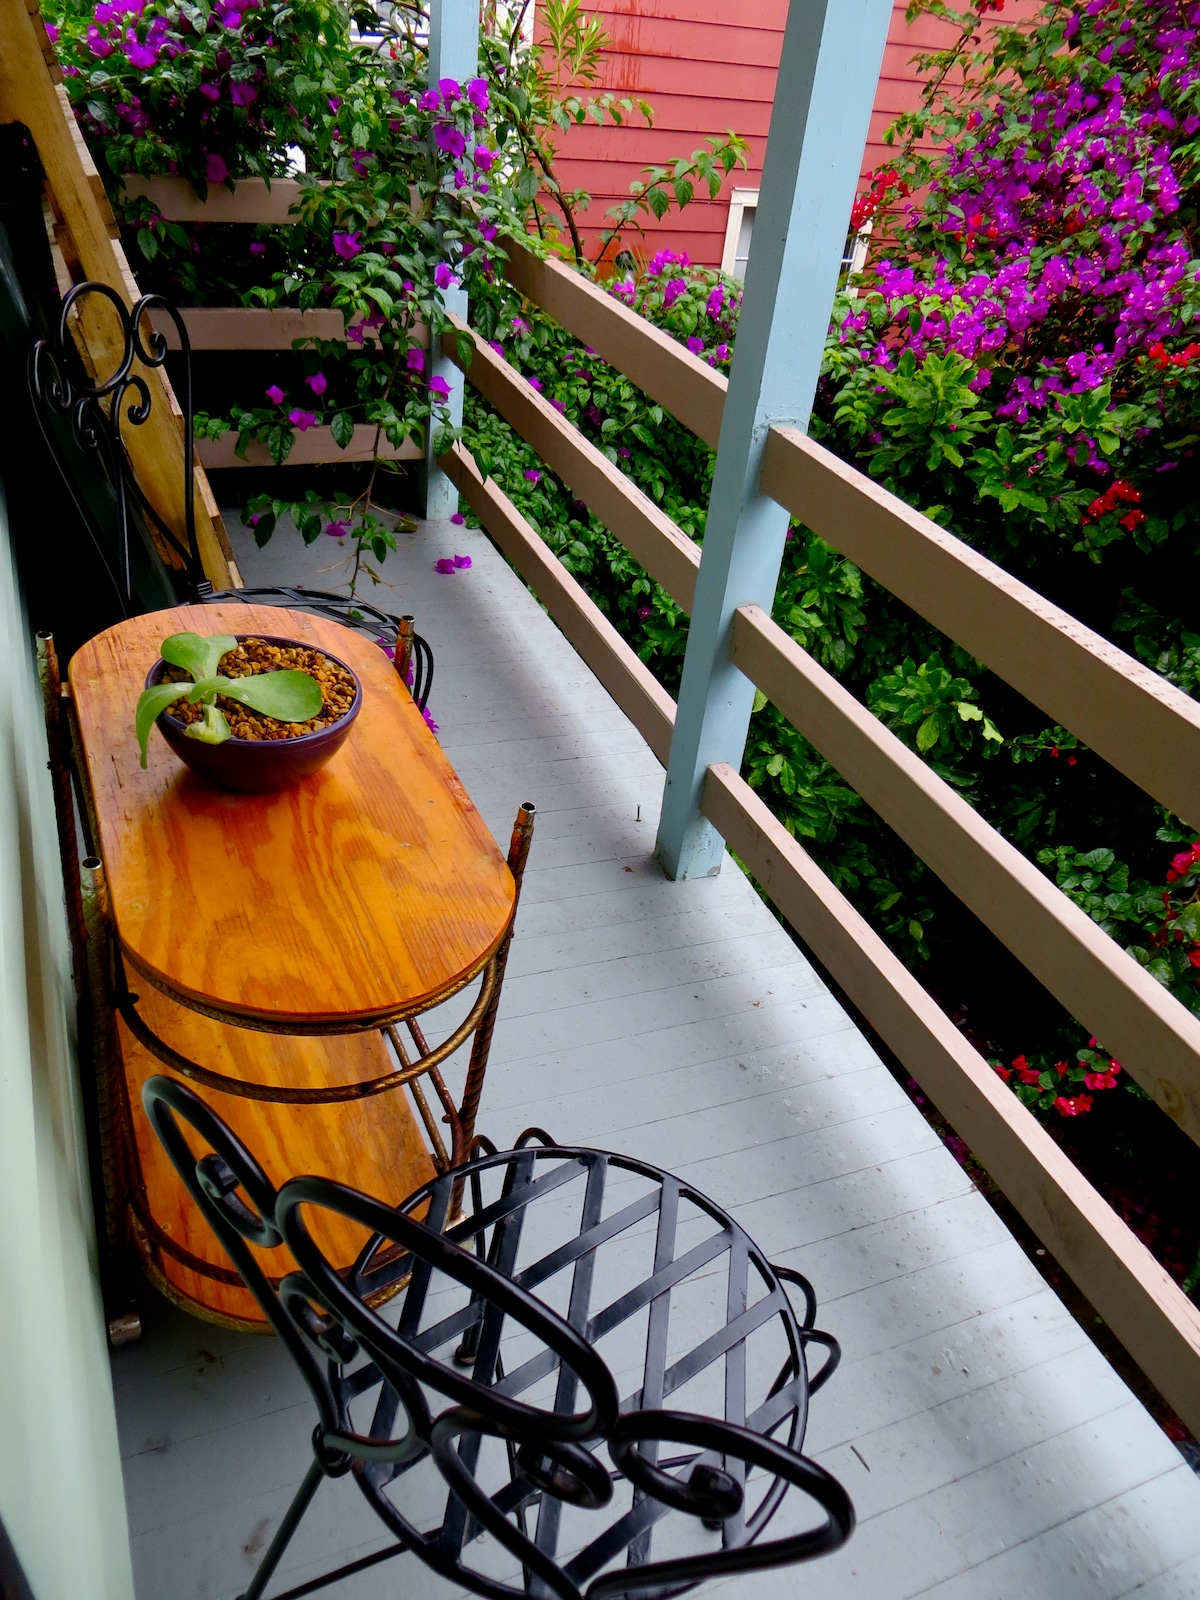 Take your hot tea or coffee to the balcony, located outside by the kitchen.